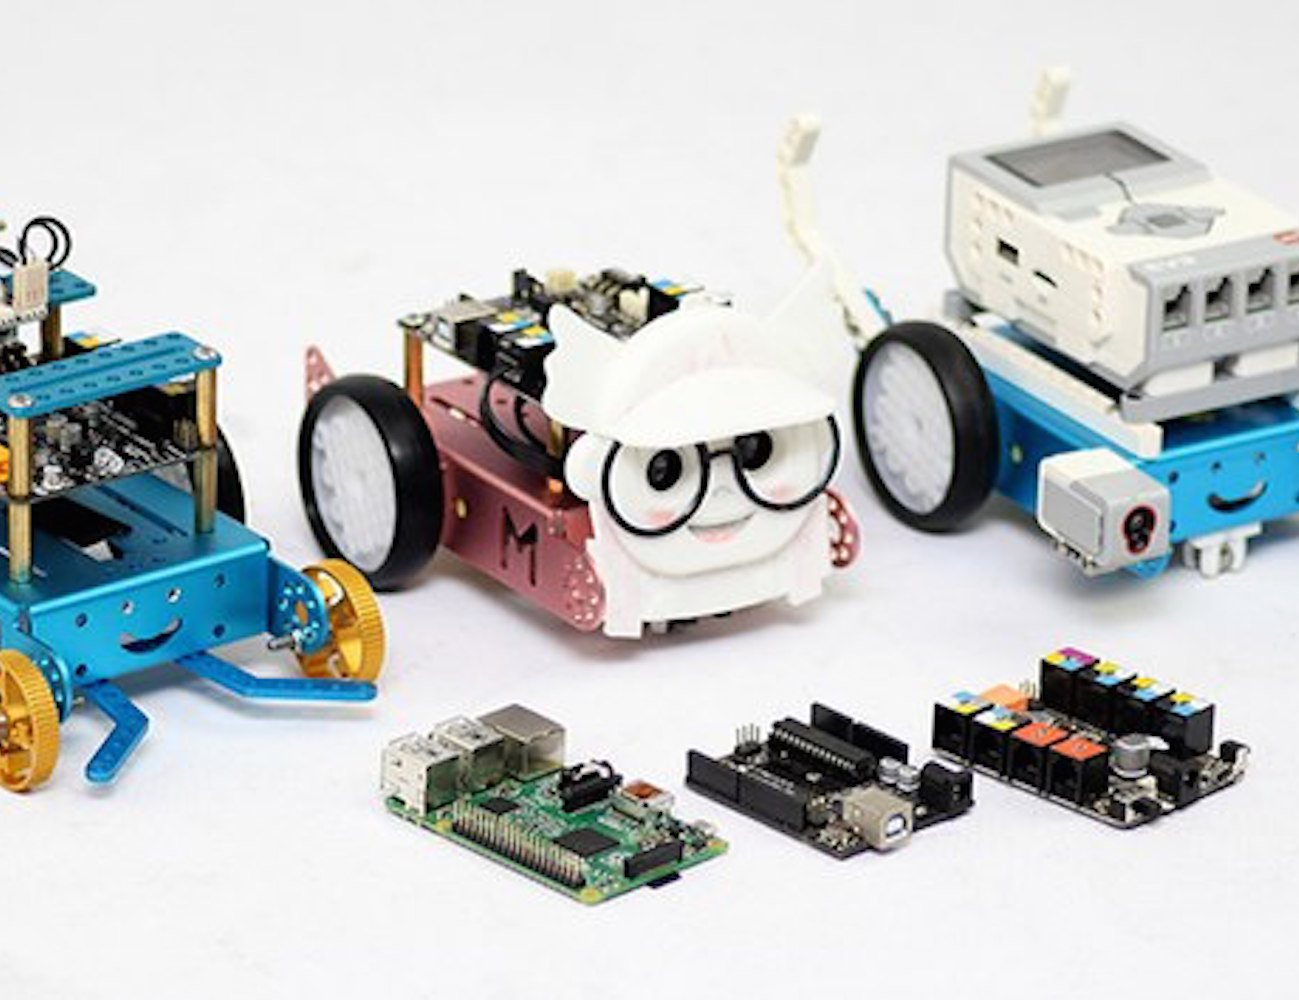 mbot-educational-robot-for-each-kid-05